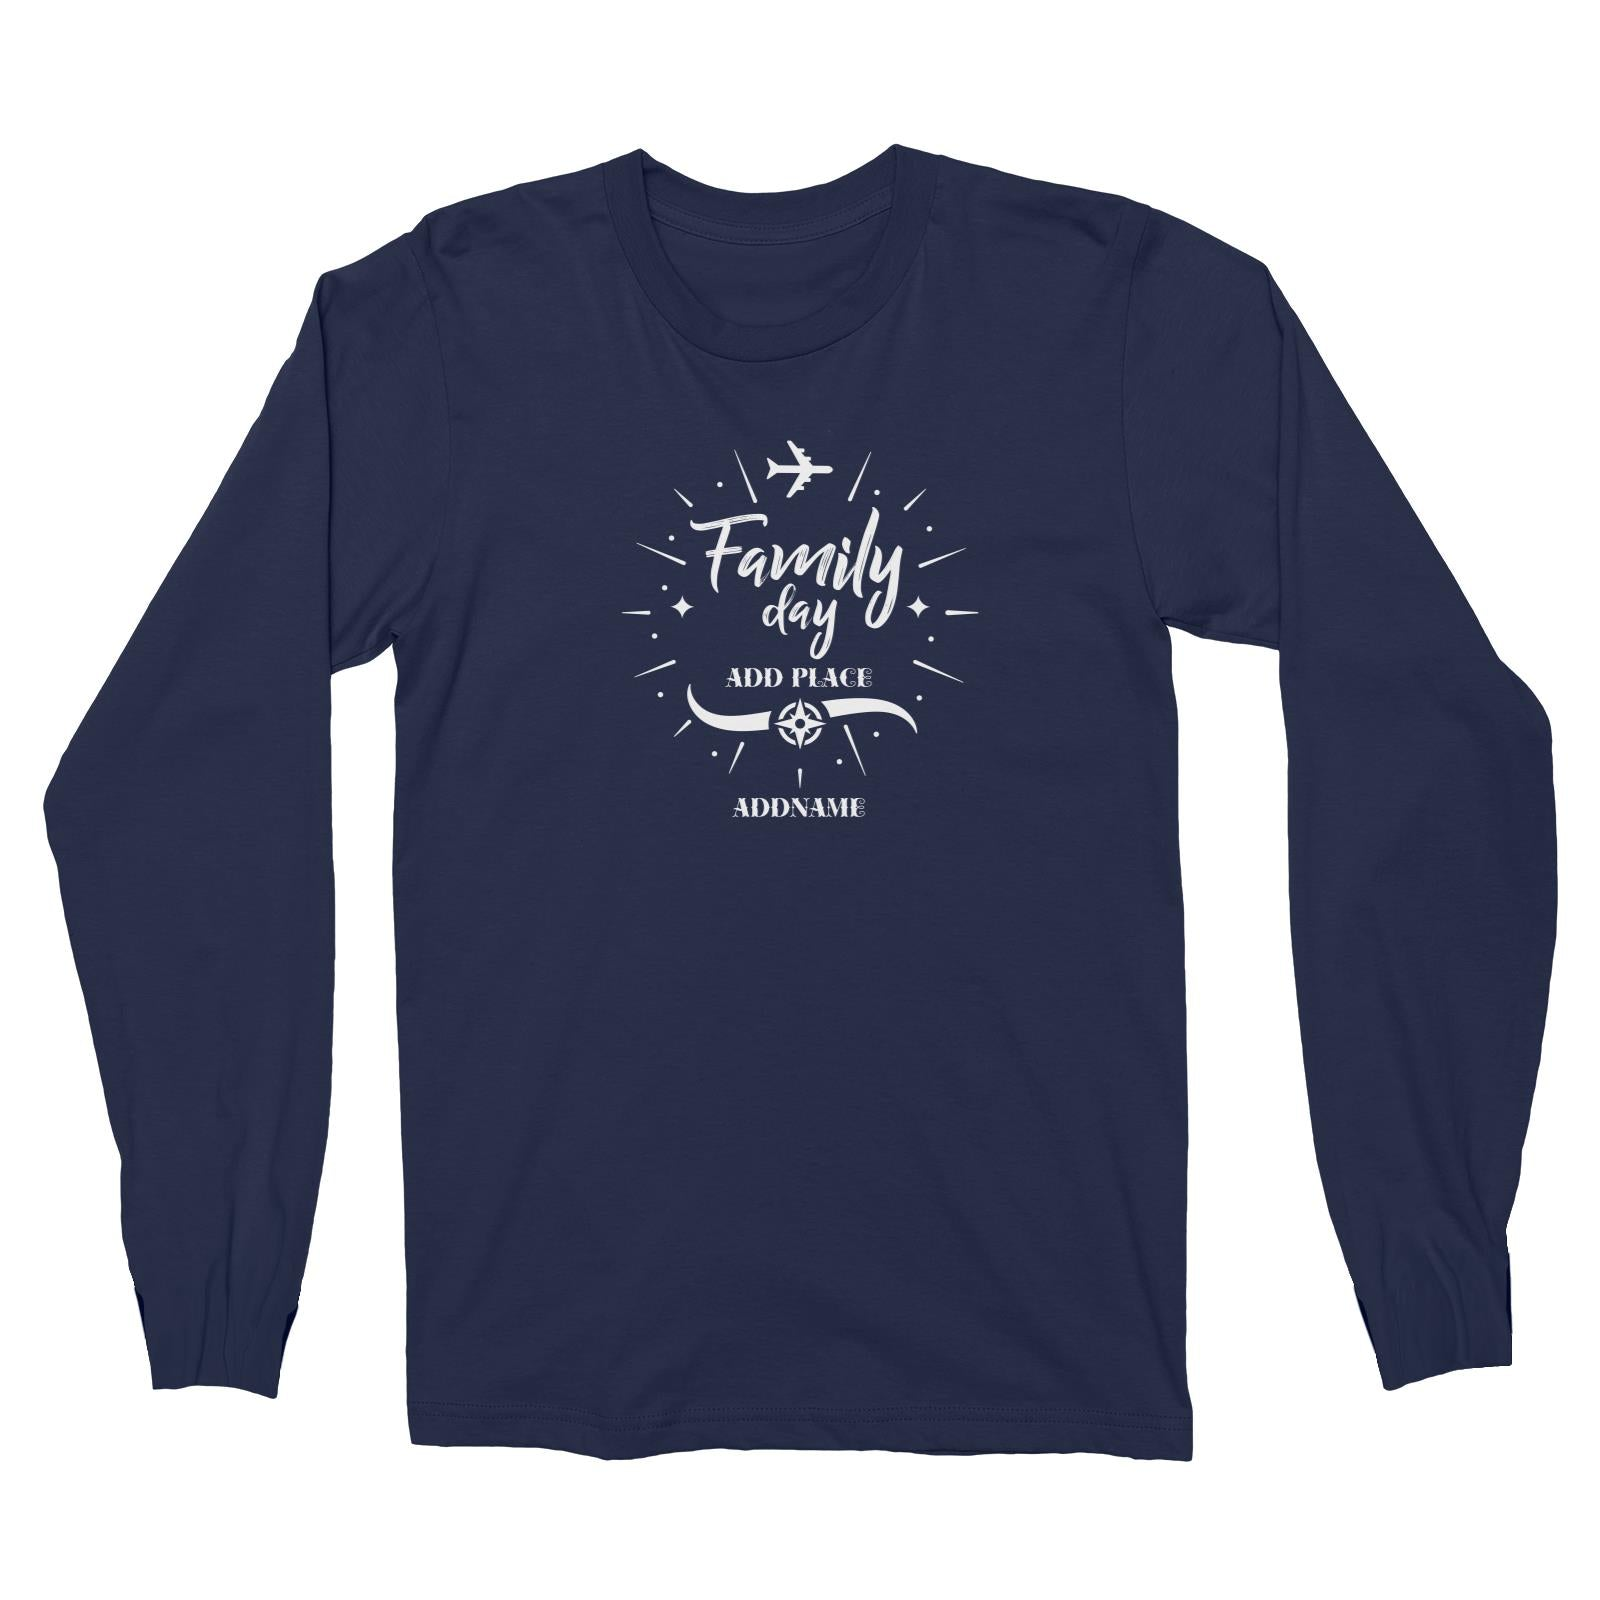 Family Day Flight Plane Icon Family Day Addname And Add Place Long Sleeve Unisex T-Shirt